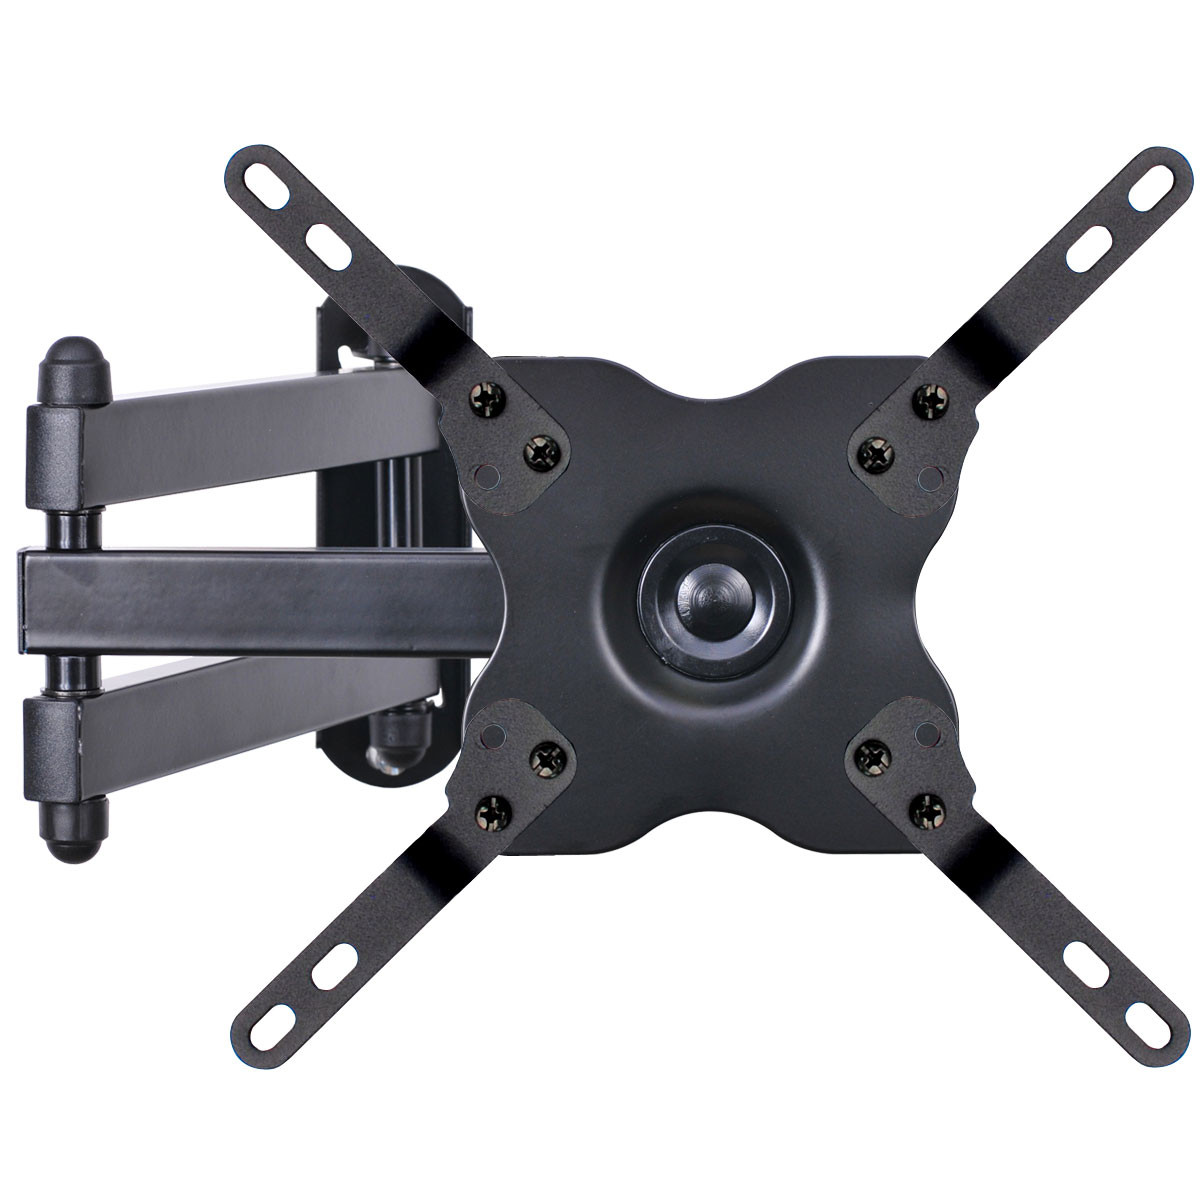 "VideoSecu Full Motion TV Wall Mount for VIZIO 24 28 32 39"" E32-D1 E32h-C1 D39h-D0 D39hn-E0 LED LCD Articulating Tilt WS2"